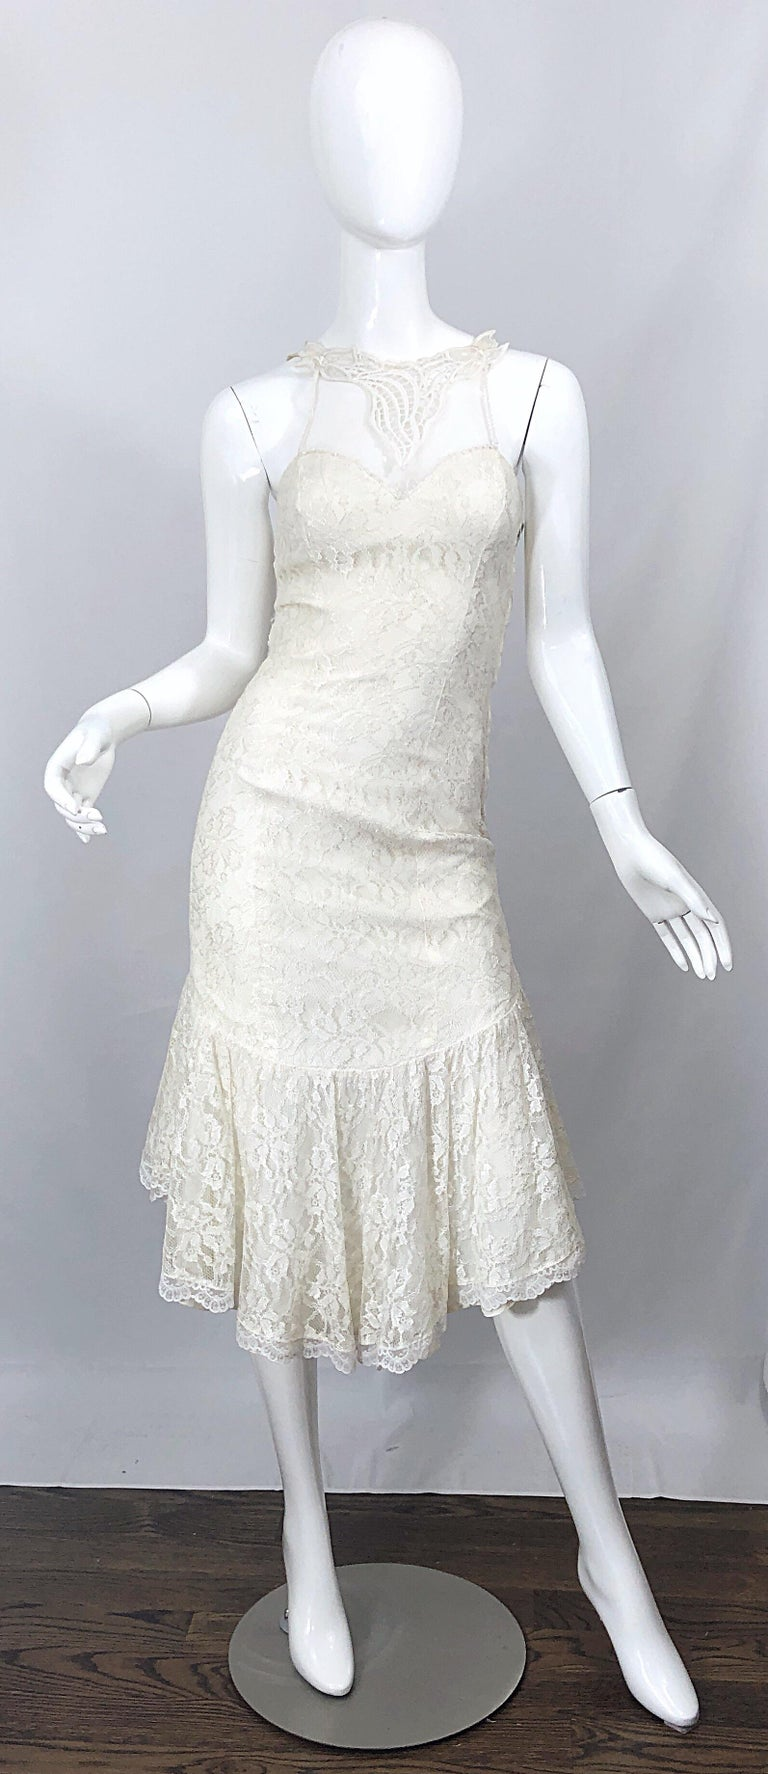 Fabulous 1980s SAMIR ivory / white lace embroidered handkerchief hem cocktail dress! Features a sweetheart neckline with a mesh embroidered overlay above the bust. Satin bow at center back, just above the rear. Hidden zipper up the back with